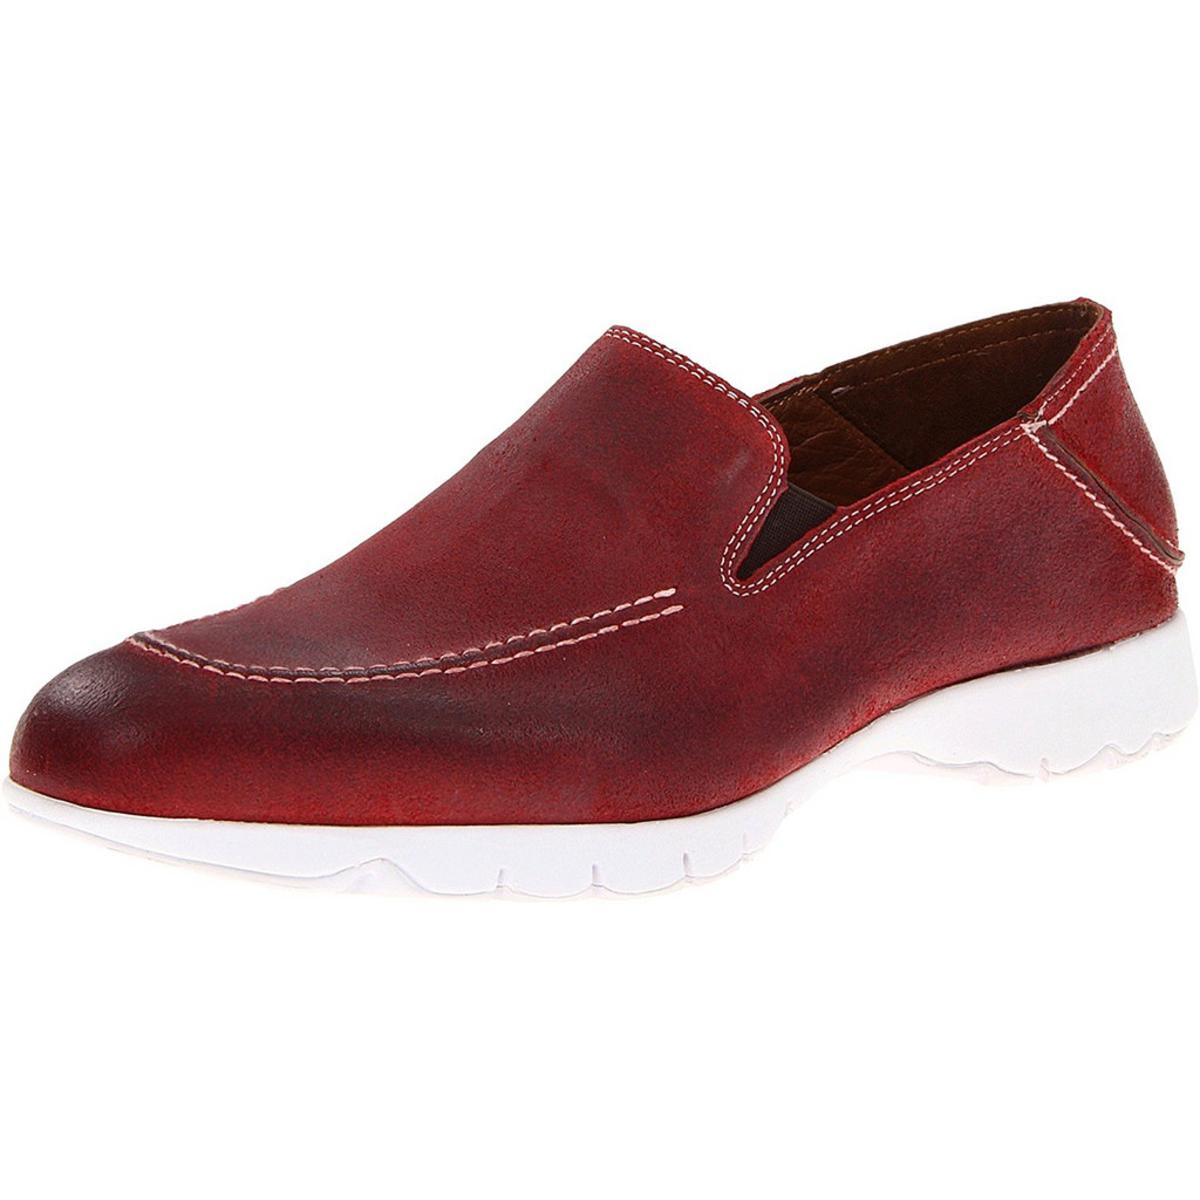 Hush Puppies Five-Base Mens Red Loafers by Hush Puppies